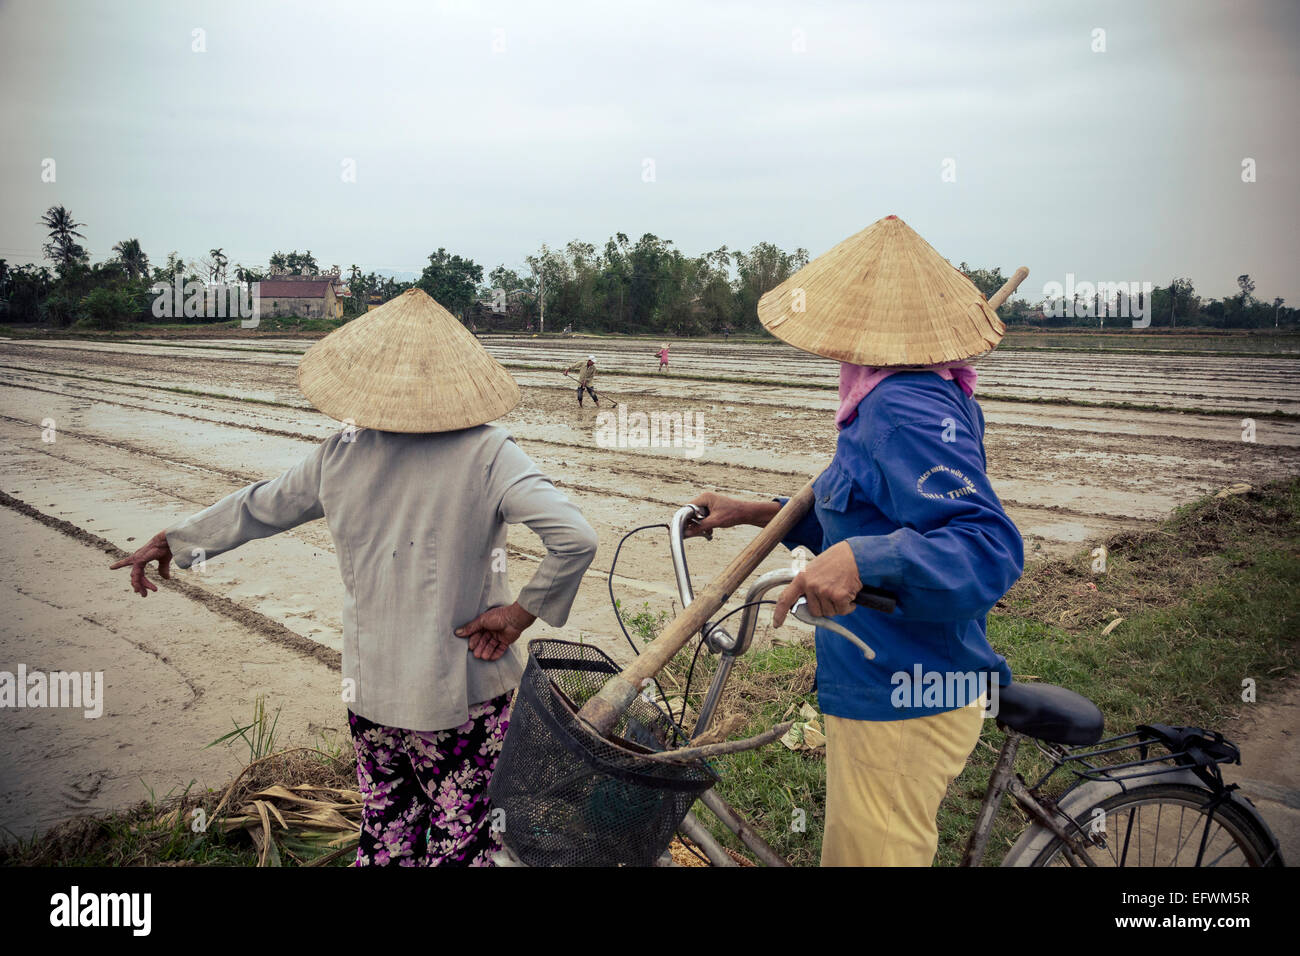 Workers by the paddy fields, Hoi An, Vietnam. - Stock Image